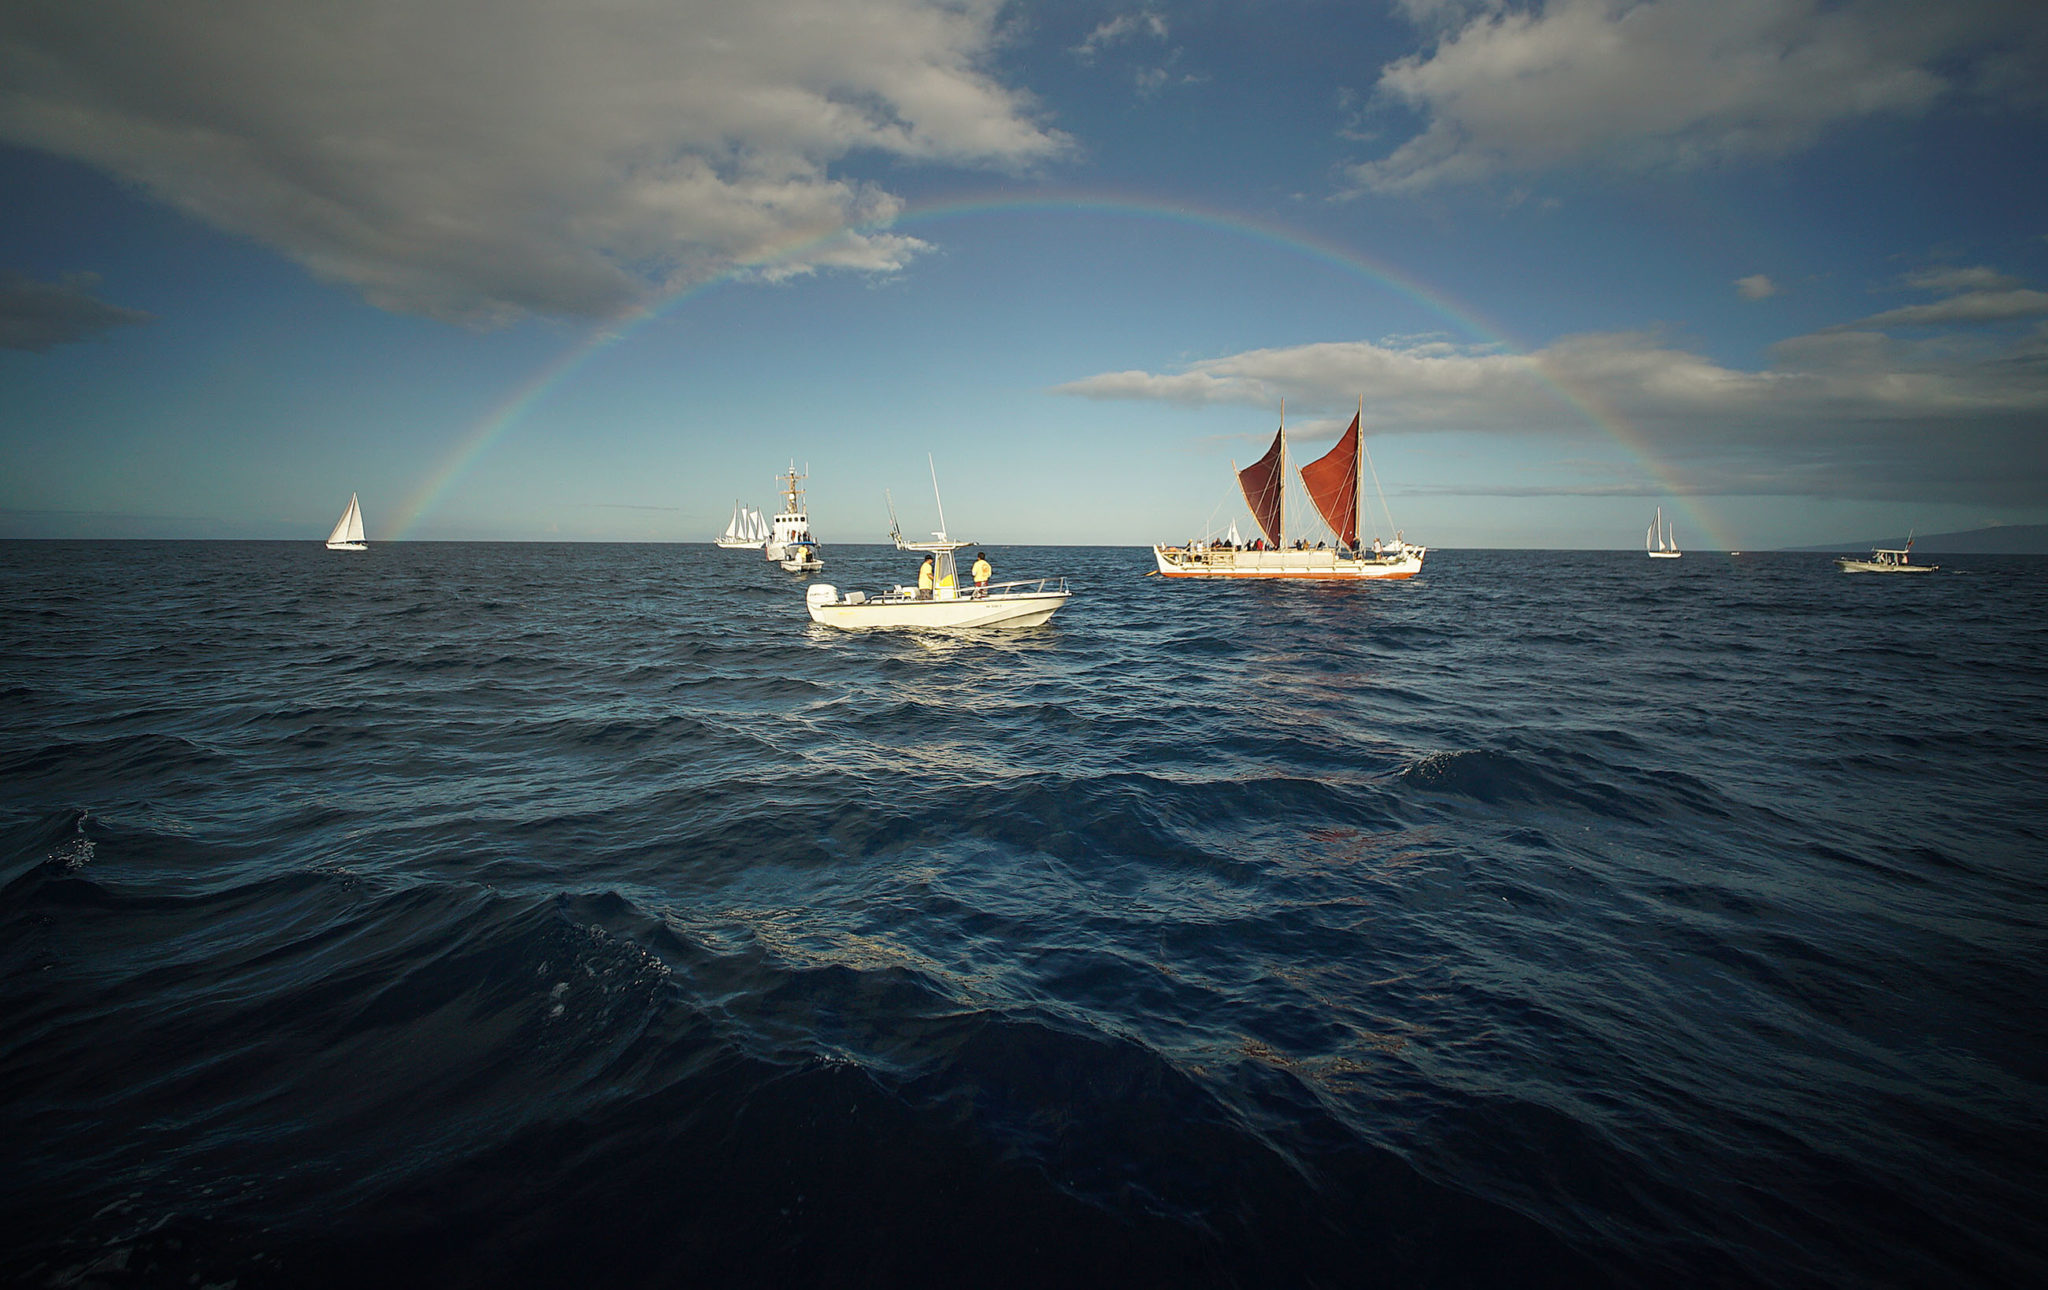 <p>Hokulea offshore Waikiki on her way to the Hokulea Homecoming Ceremony and Celebration. Cory Lum/Civil Beat</p>